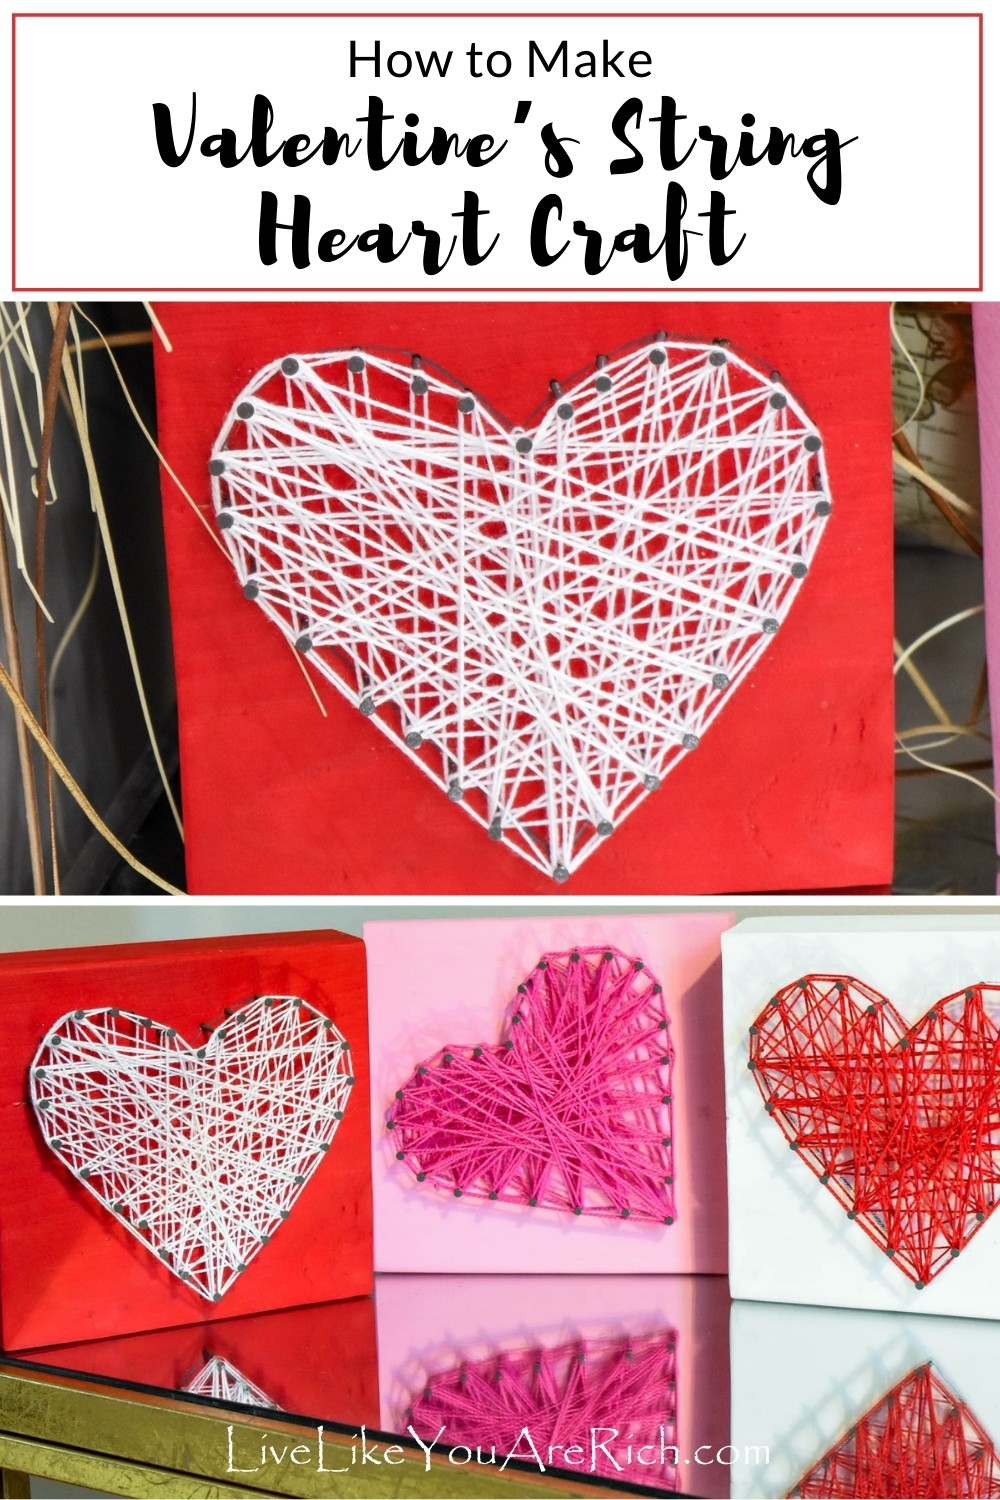 Easy, inexpensive, and fun Valentine's craft. These Valentine's String Heart Crafts were simple, inexpensive and are fun to make with kids.